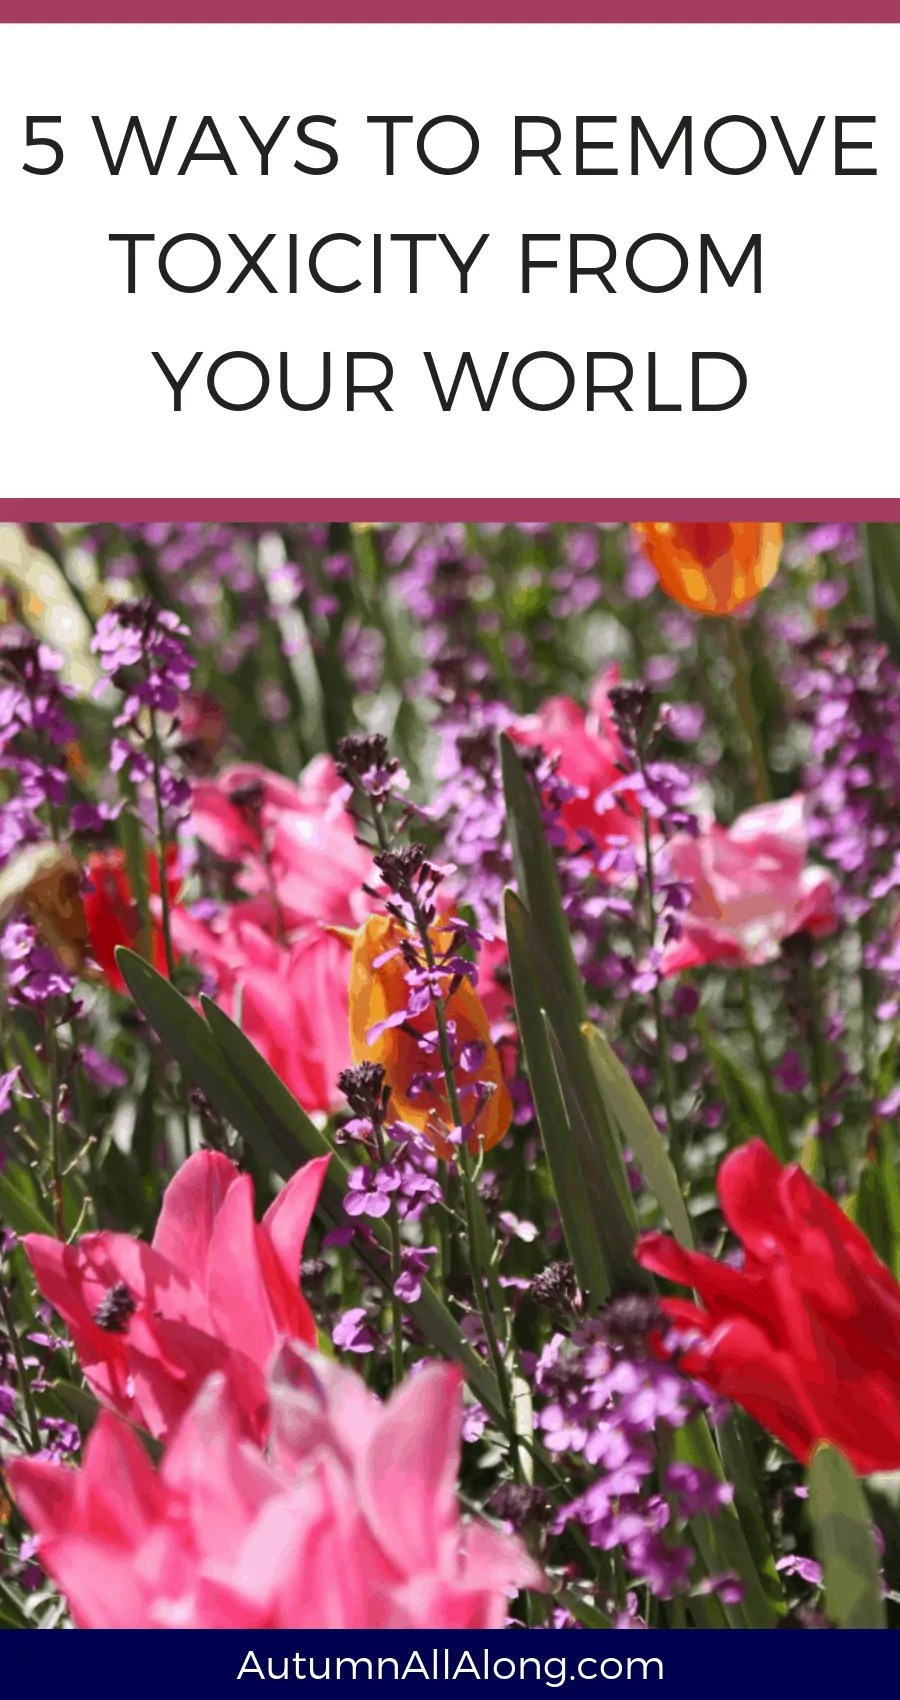 5 ways to remove toxicity from your world | via The Spirited Violet